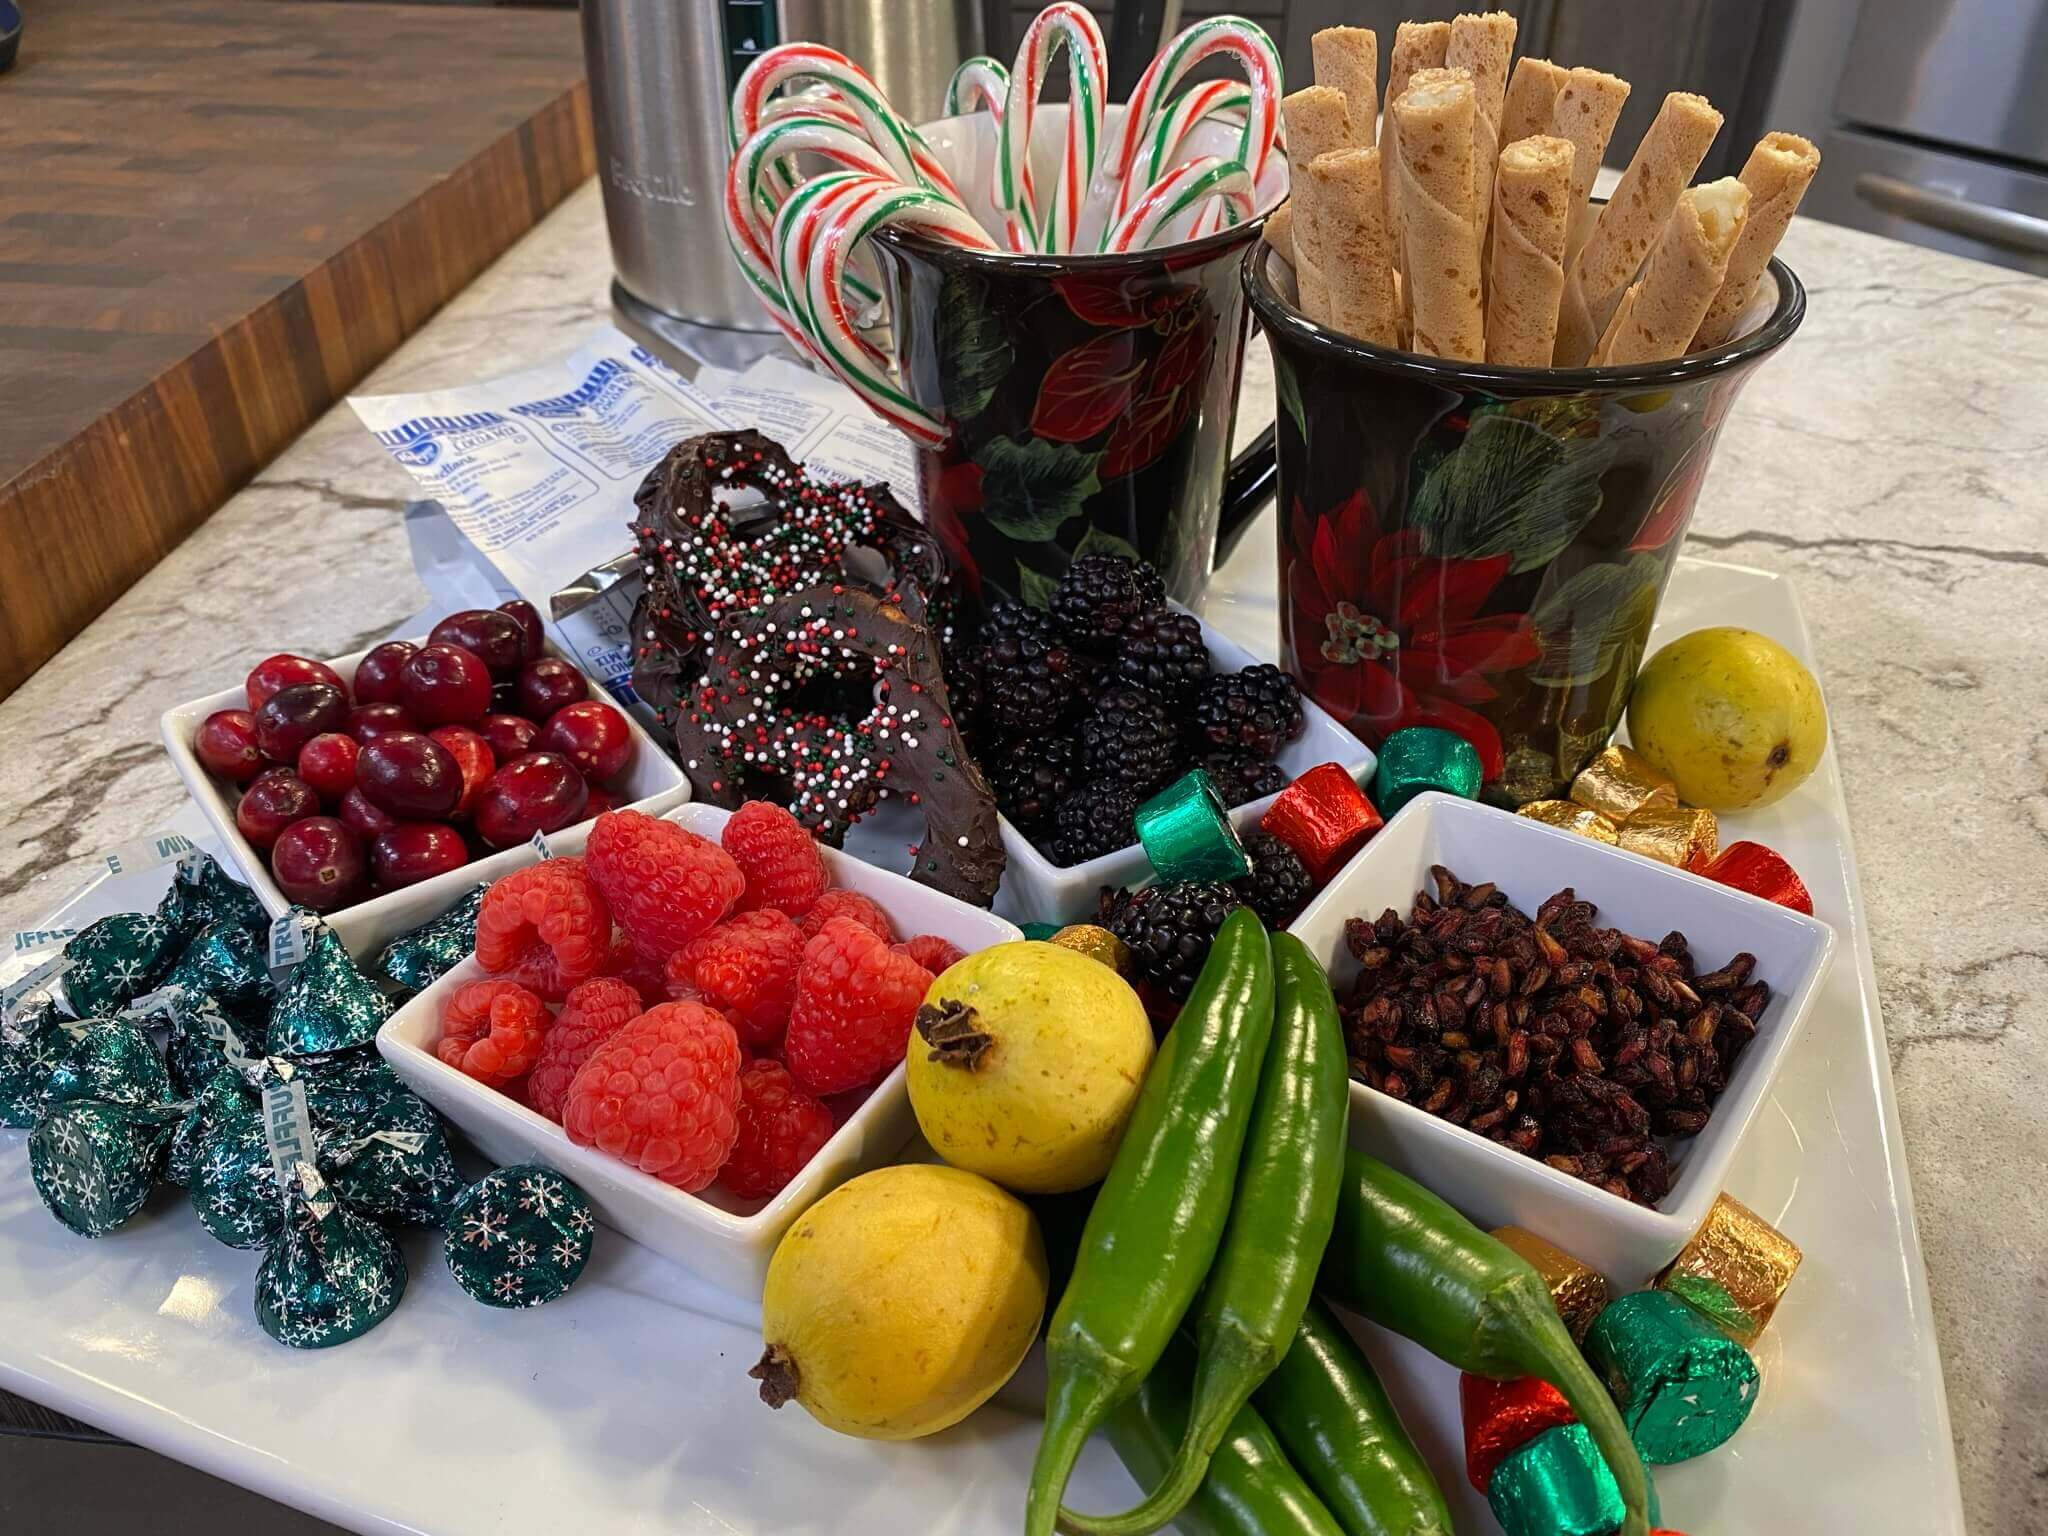 Festive Holiday Snack Board: A Fun-Filled Hot Chocolate Tray